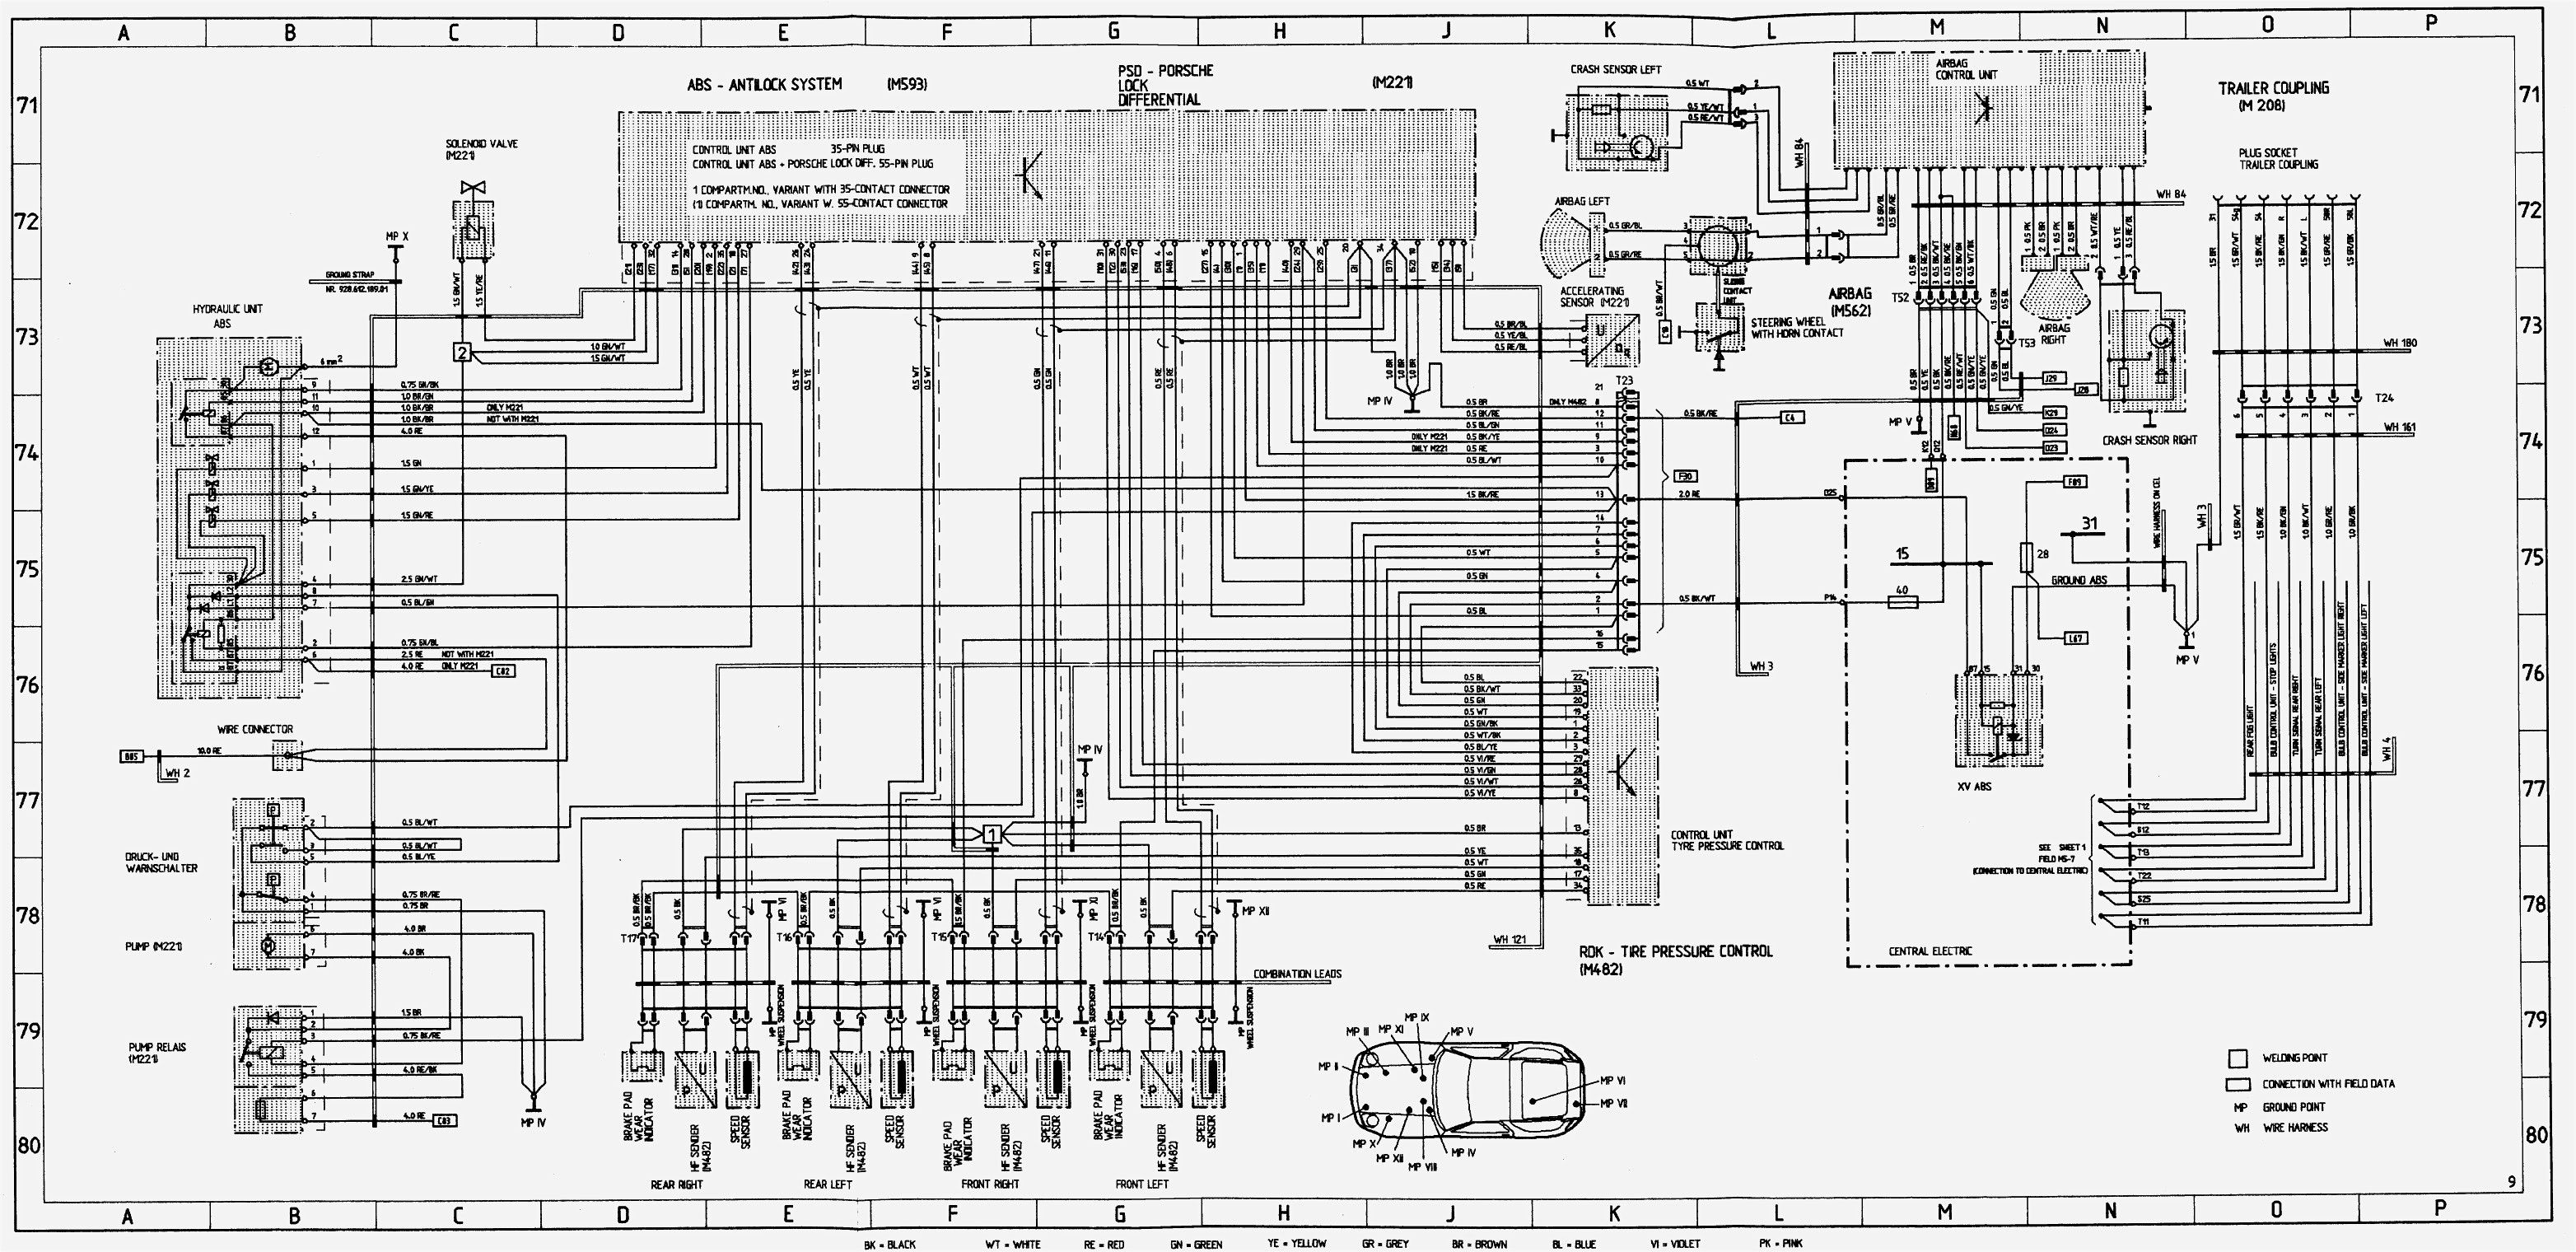 Bmw E39 Dsc Wiring Diagram Free Download Diagrams Schematics Lively | E36 m3,  Bmw | 1998 Bmw M3 E36 Radio Wiring |  | Pinterest